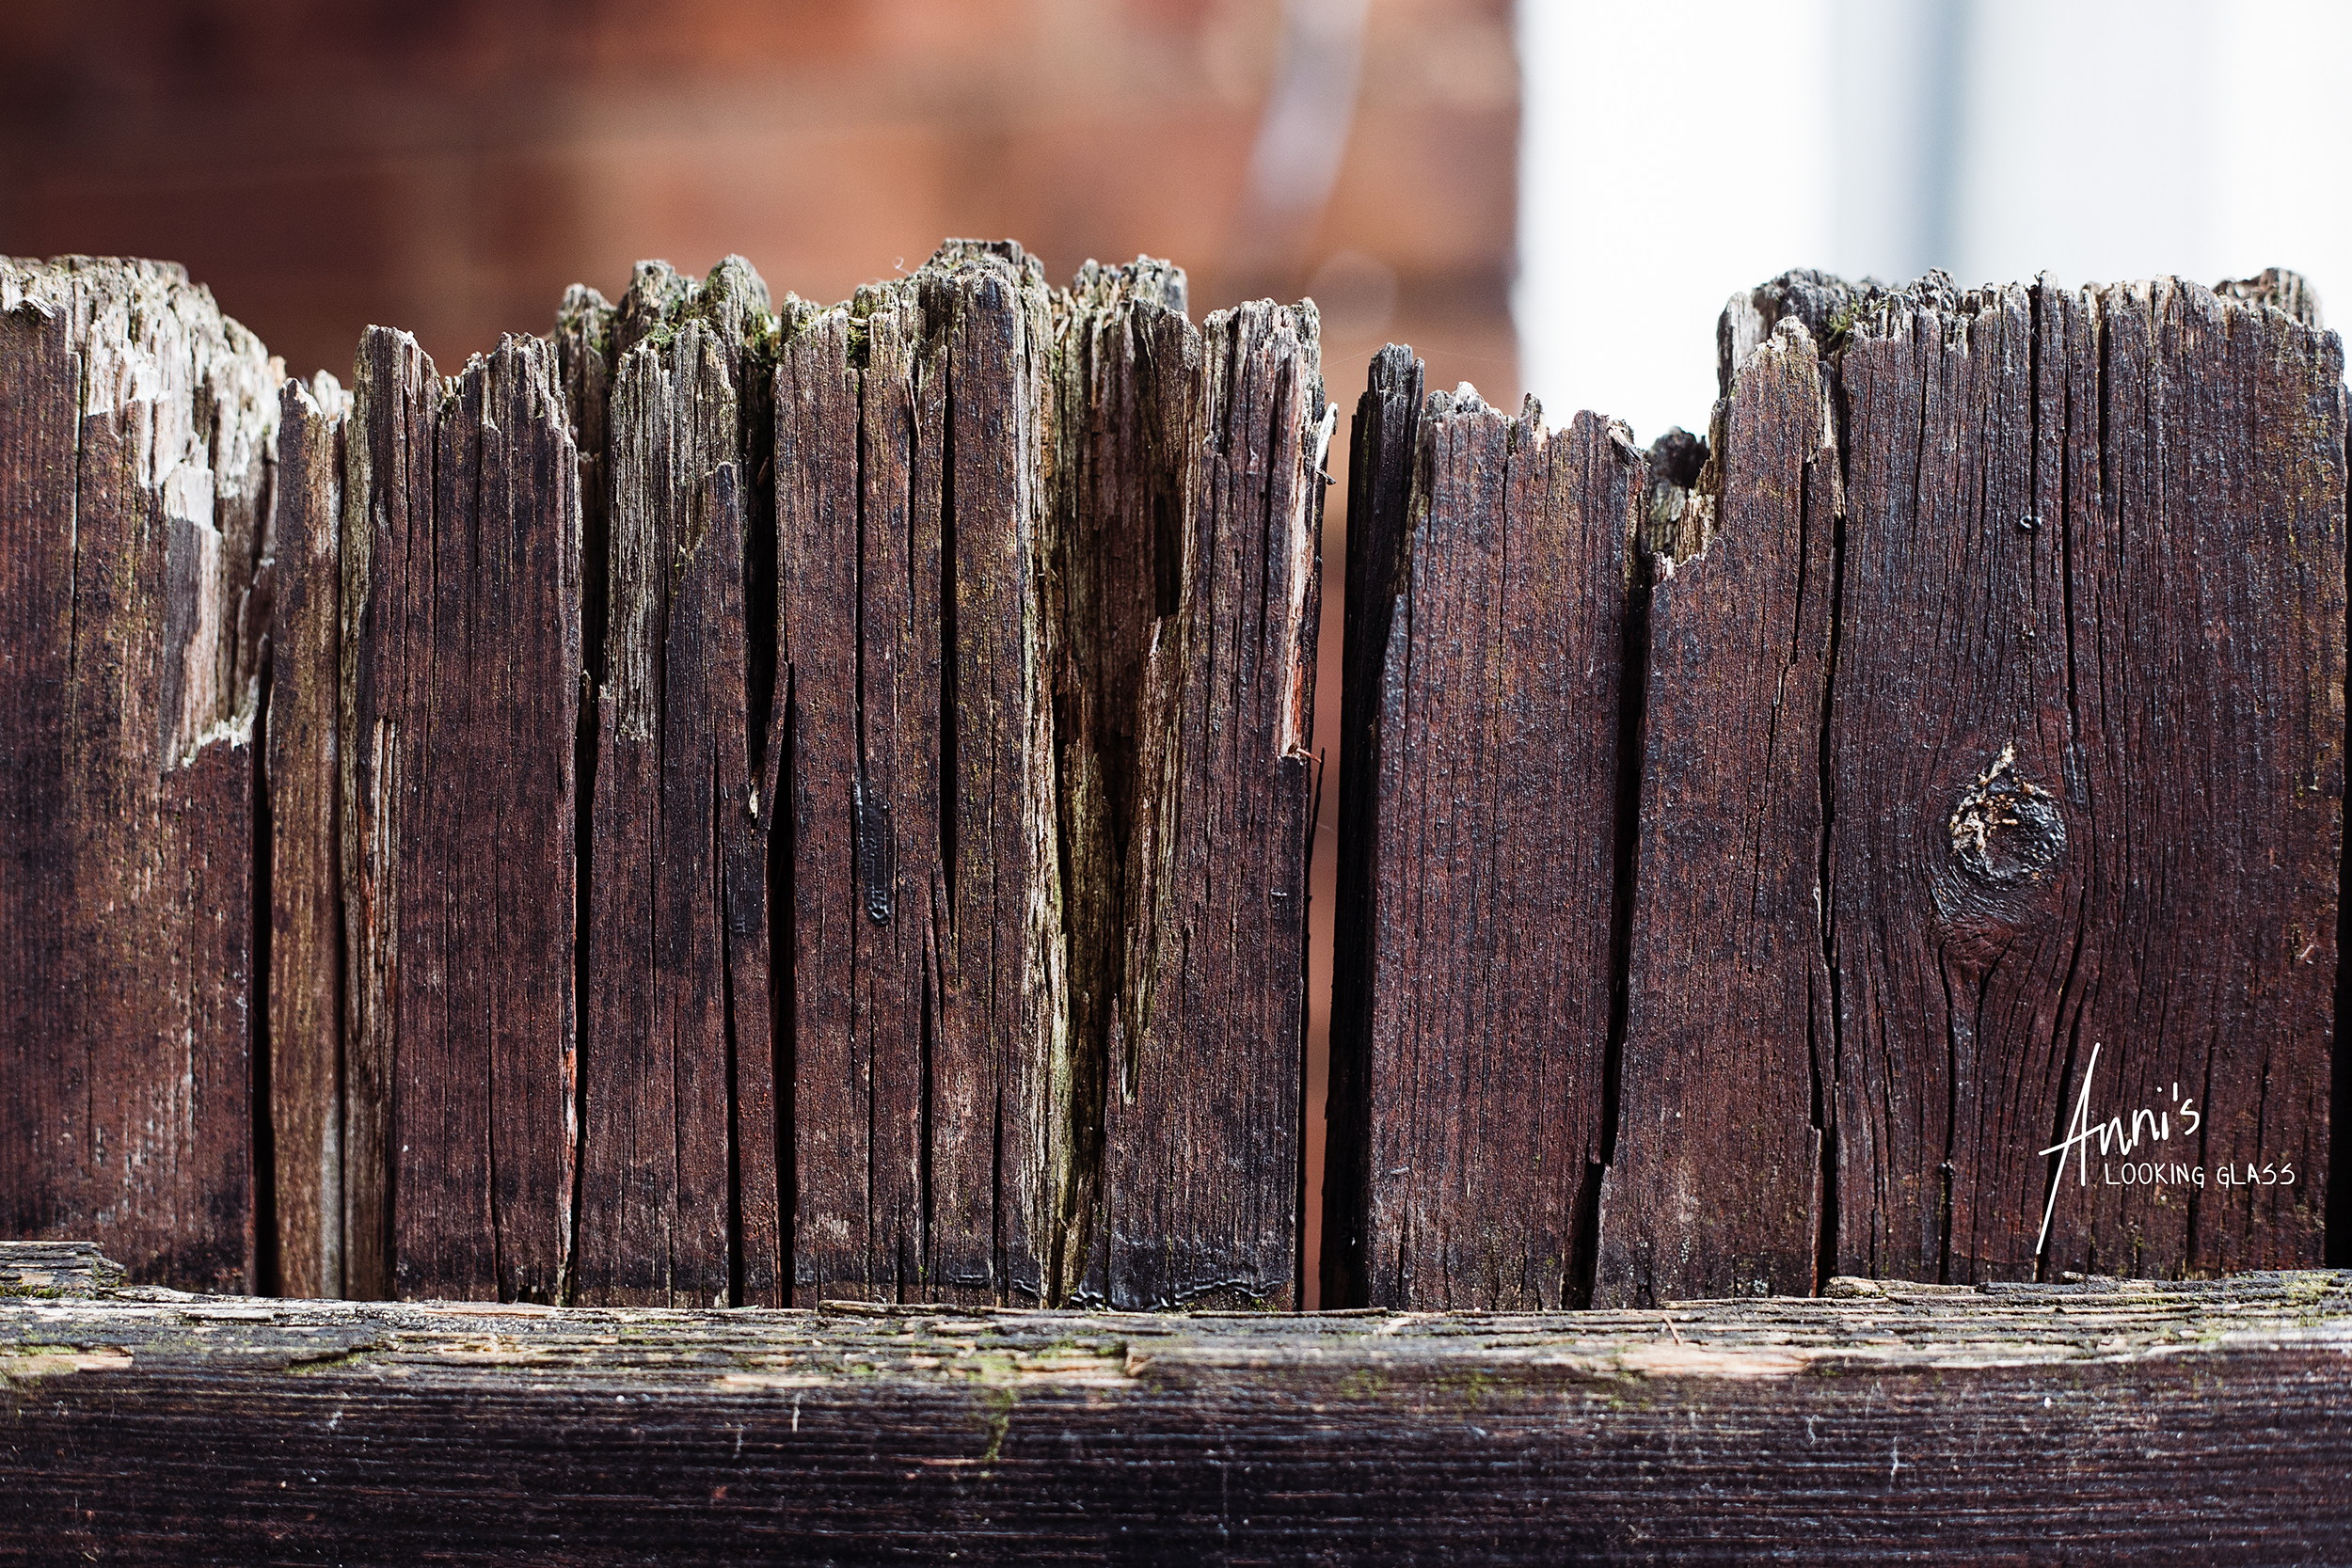 Close up of a wooden fence